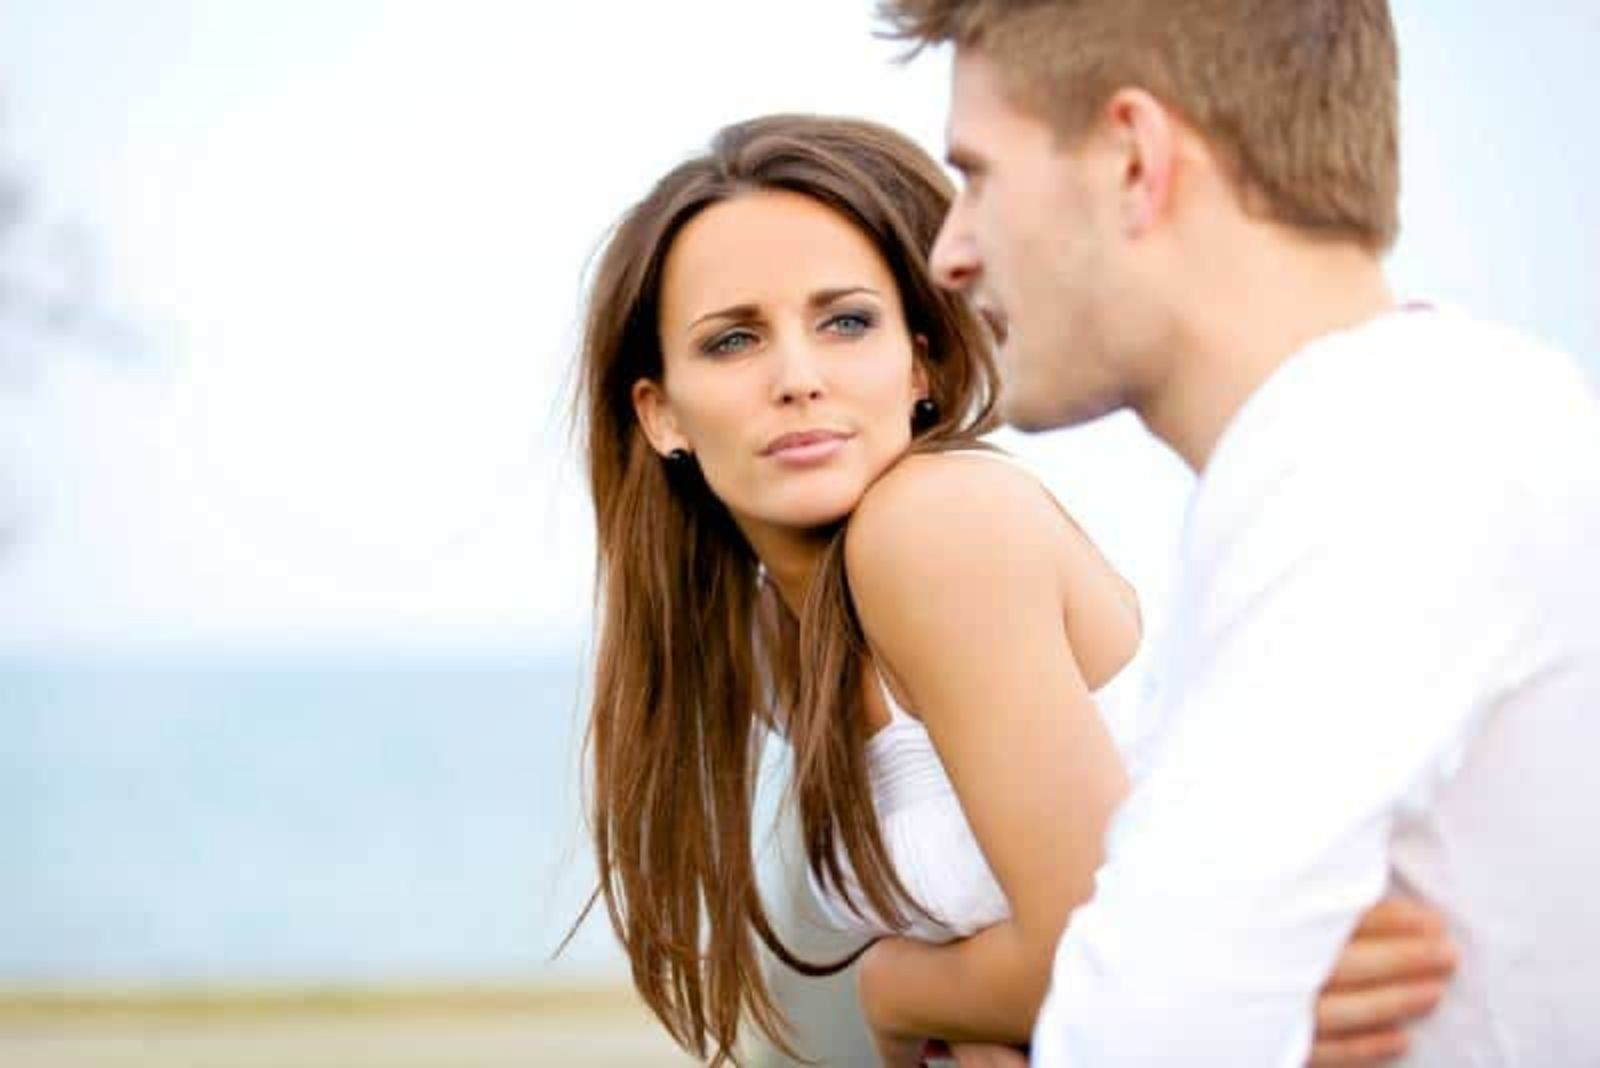 portrait of woman listening to her man outside